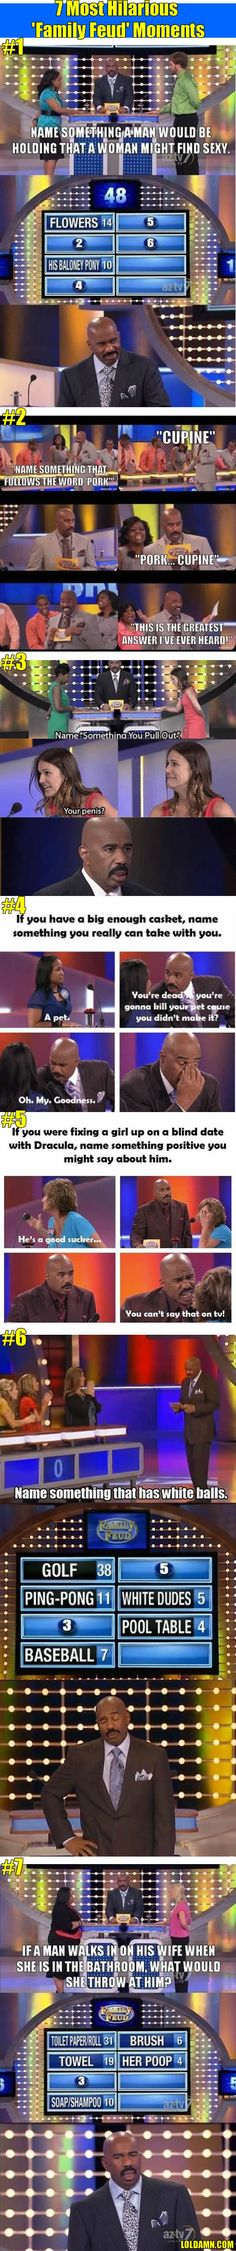 7 Hilarious Family Fued Moments Pictures, Photos, and Images for Facebook, Tumblr, Pinterest, and Twitter